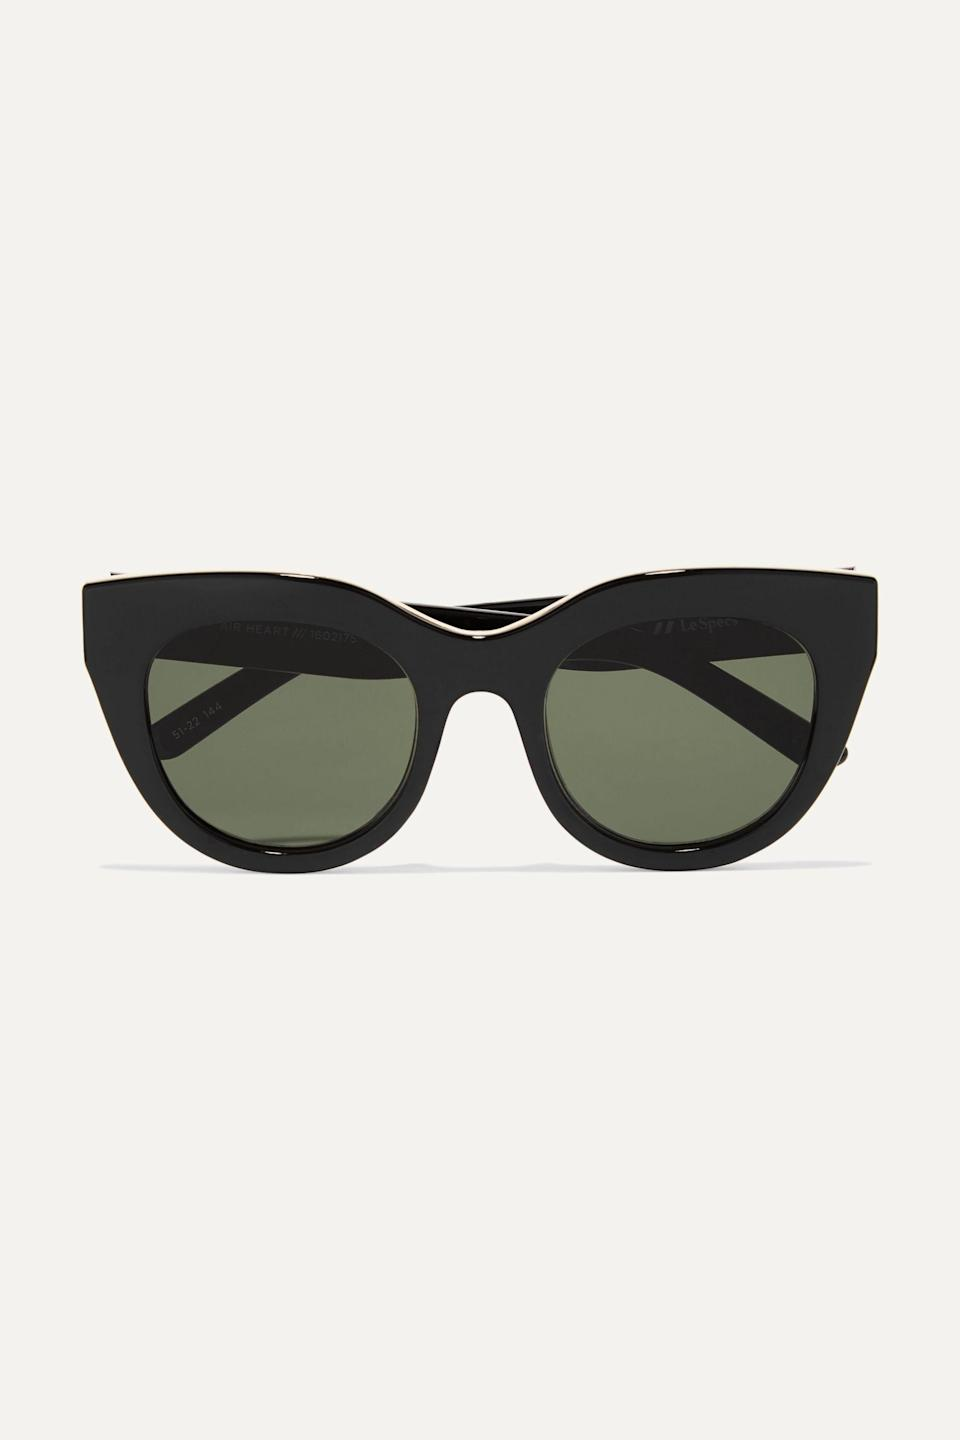 """<p><strong>Le Specs</strong></p><p>net-a-porter.com</p><p><strong>$60.00</strong></p><p><a href=""""https://go.redirectingat.com?id=74968X1596630&url=https%3A%2F%2Fwww.net-a-porter.com%2Fen-us%2Fshop%2Fproduct%2Fle-specs%2Fair-heart-cat-eye-acetate-and-gold-tone-sunglasses%2F1125566&sref=https%3A%2F%2Fwww.townandcountrymag.com%2Fstyle%2Ffashion-trends%2Fg36049858%2Fmeghan-markle-sunglasses%2F"""" rel=""""nofollow noopener"""" target=""""_blank"""" data-ylk=""""slk:SHOP NOW"""" class=""""link rapid-noclick-resp"""">SHOP NOW</a></p><p>Honestly, if you don't add these beauties to your cart, you will most definitely regret it. They're glossy, oversized, and feature black-out lenses which makes 'em the perfect accessory for any 'fit—especially if you're going for the bougie, but on a budget look.</p>"""